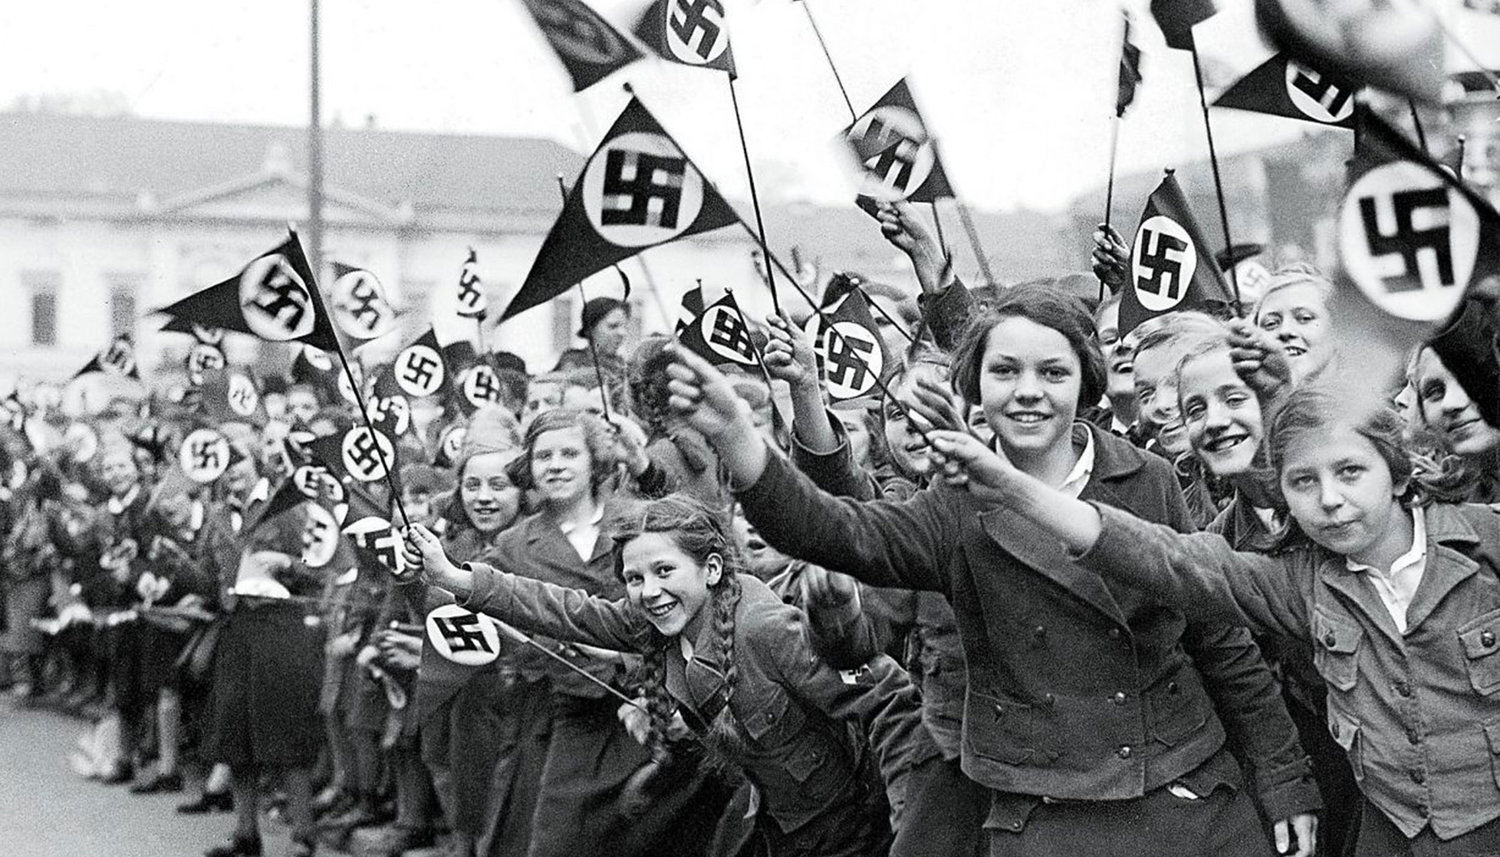 Members of the League of German Girls wave Nazi flags in support of the German annexation of Austria, in Vienna, March 1938.